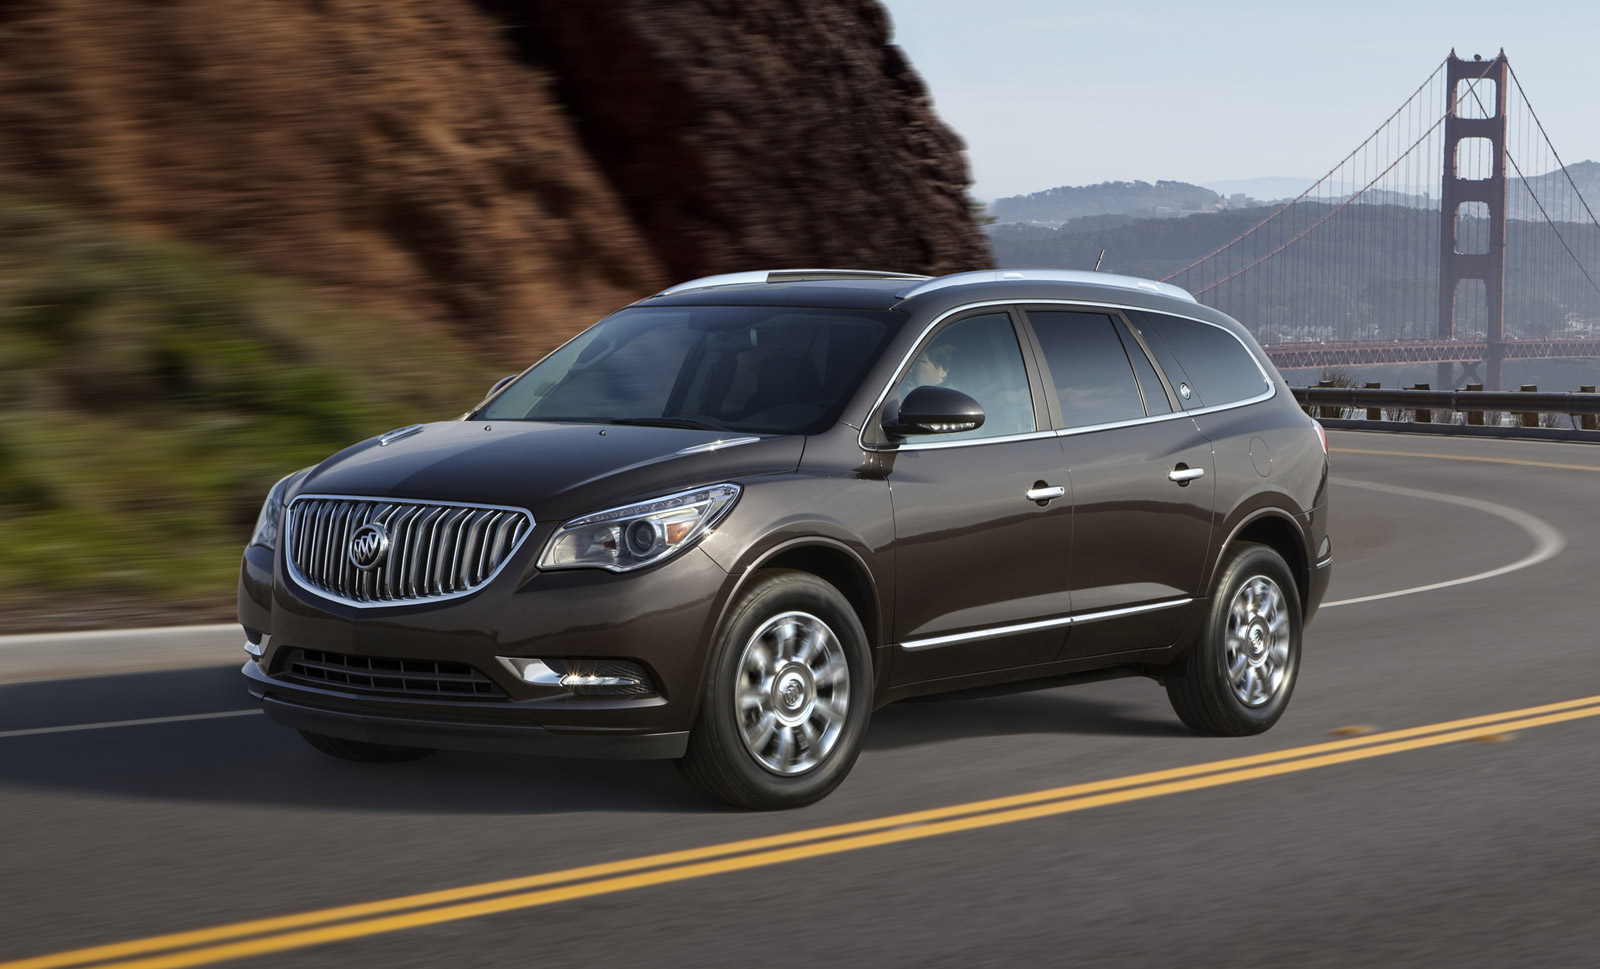 2013 buick enclave review ratings specs prices and photos the car connection. Black Bedroom Furniture Sets. Home Design Ideas